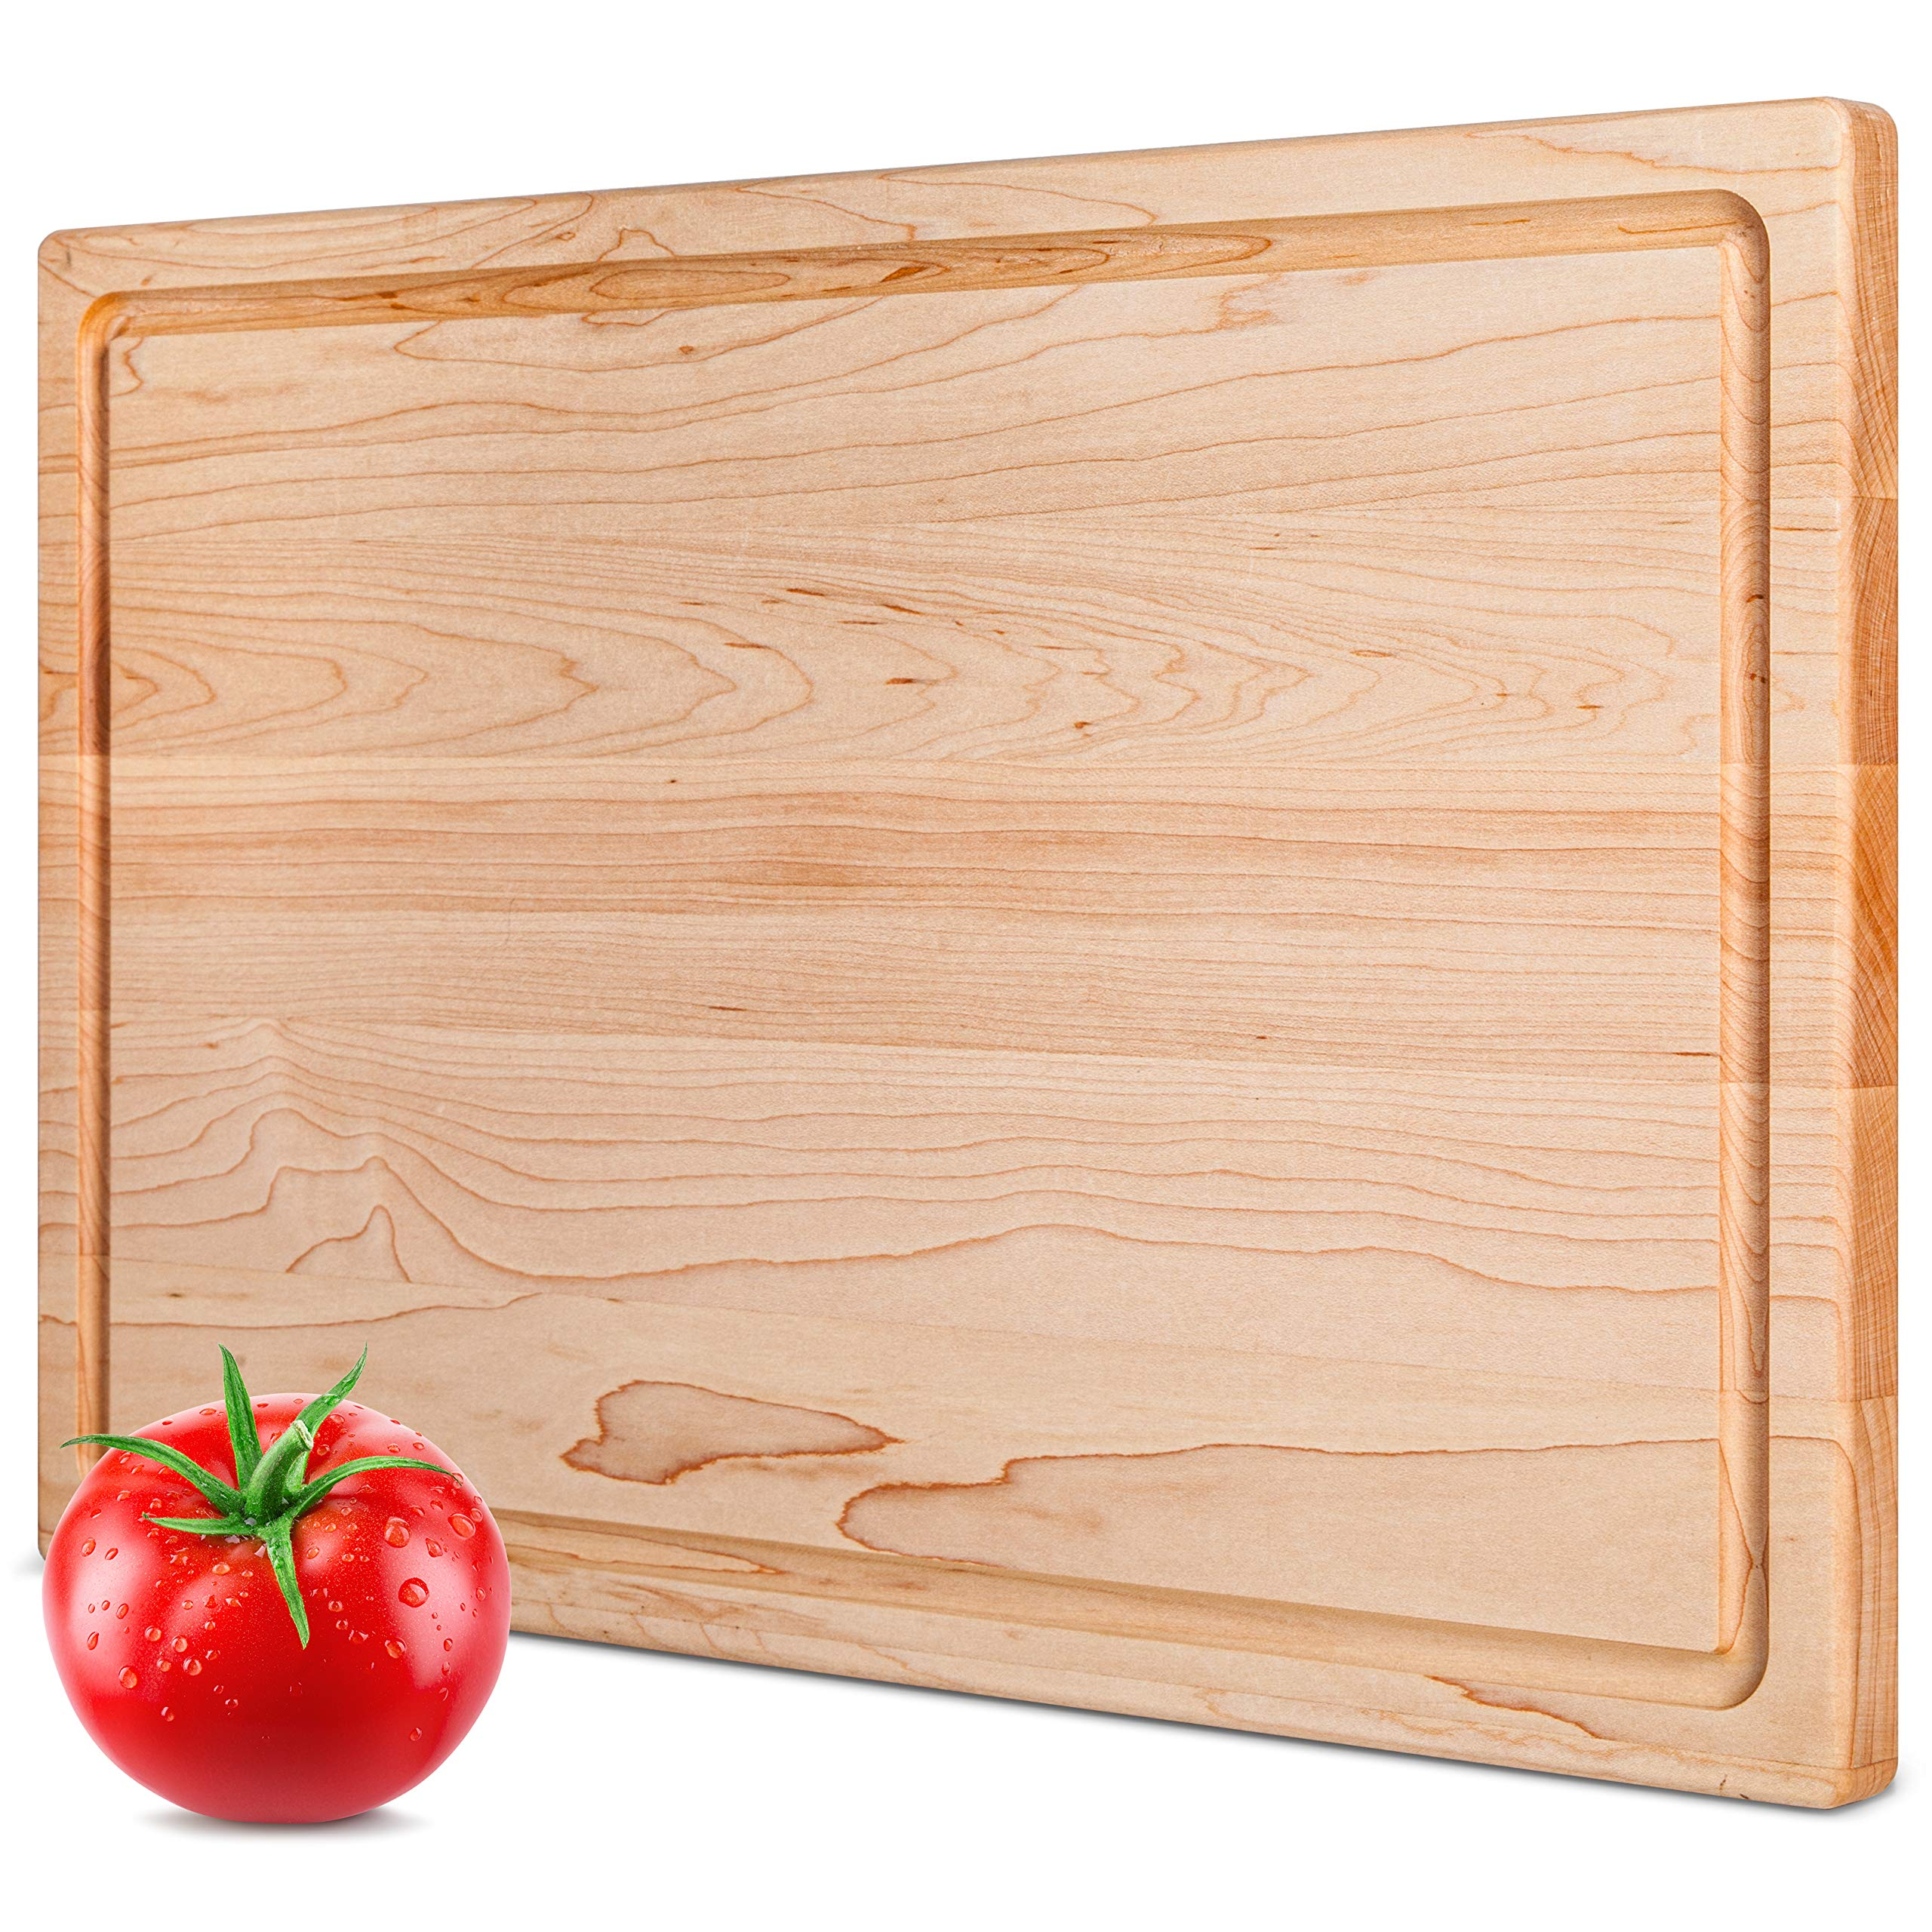 Maple Cutting Board by Mevell - Premium Large Wood Cutting Boards for Kitchen Great for Charcuterie & Cheese -Reversible 17x11 with Juice Groove, Big Canadian Hardwood Chopping and Carving Block